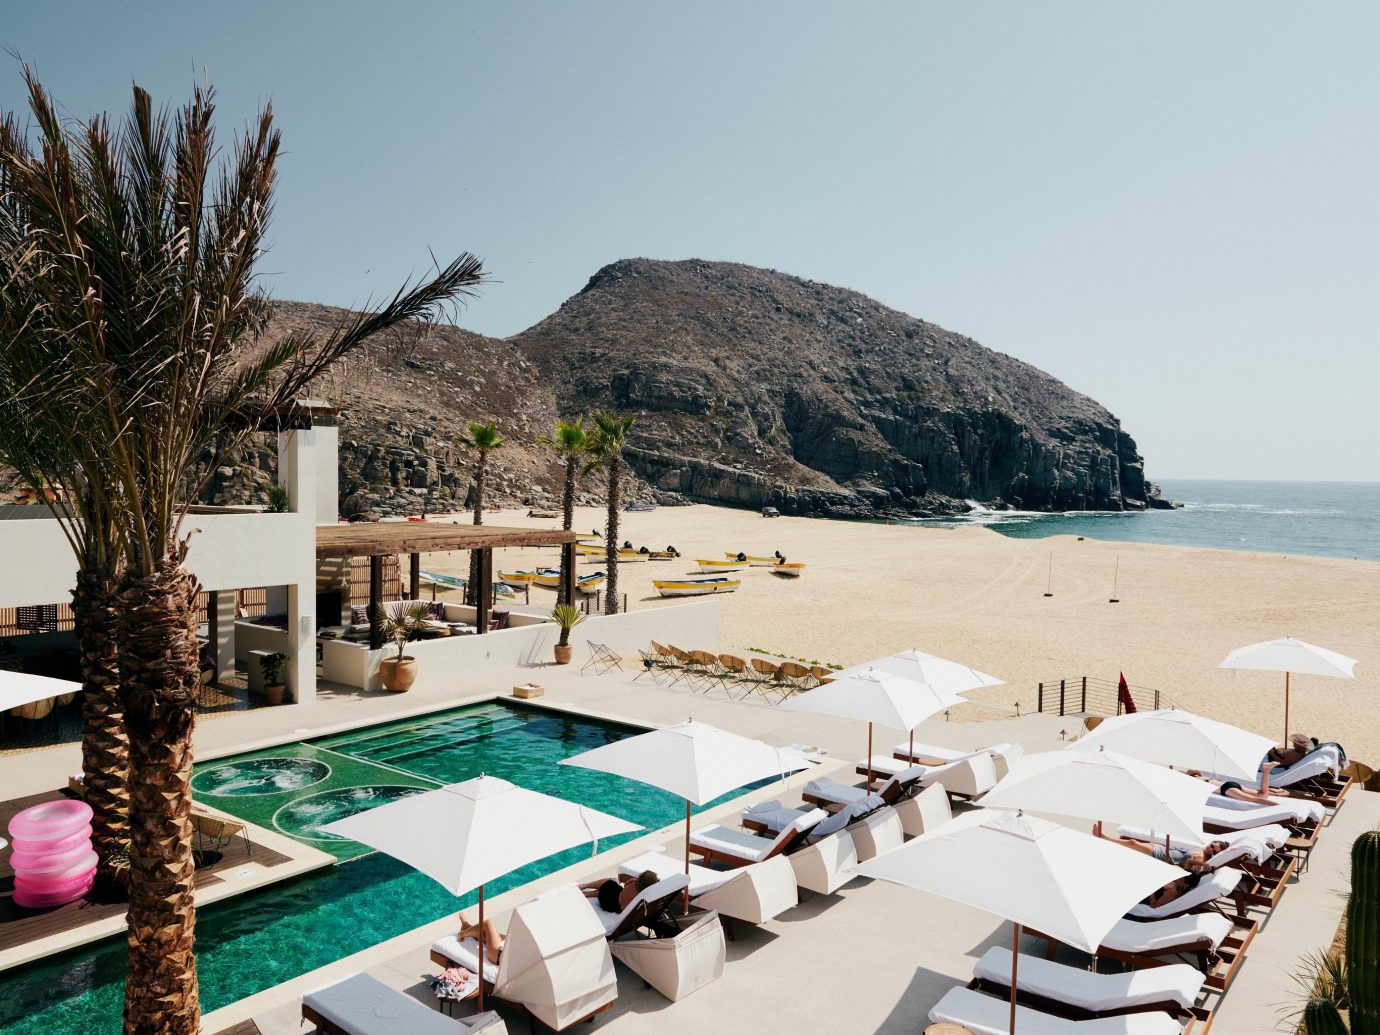 Beach Boutique Hotels Honeymoon Hotels Luxury Travel Mexico Romance Tulum sky outdoor Resort swimming pool vacation leisure hotel real estate Villa tourism Sea estate apartment